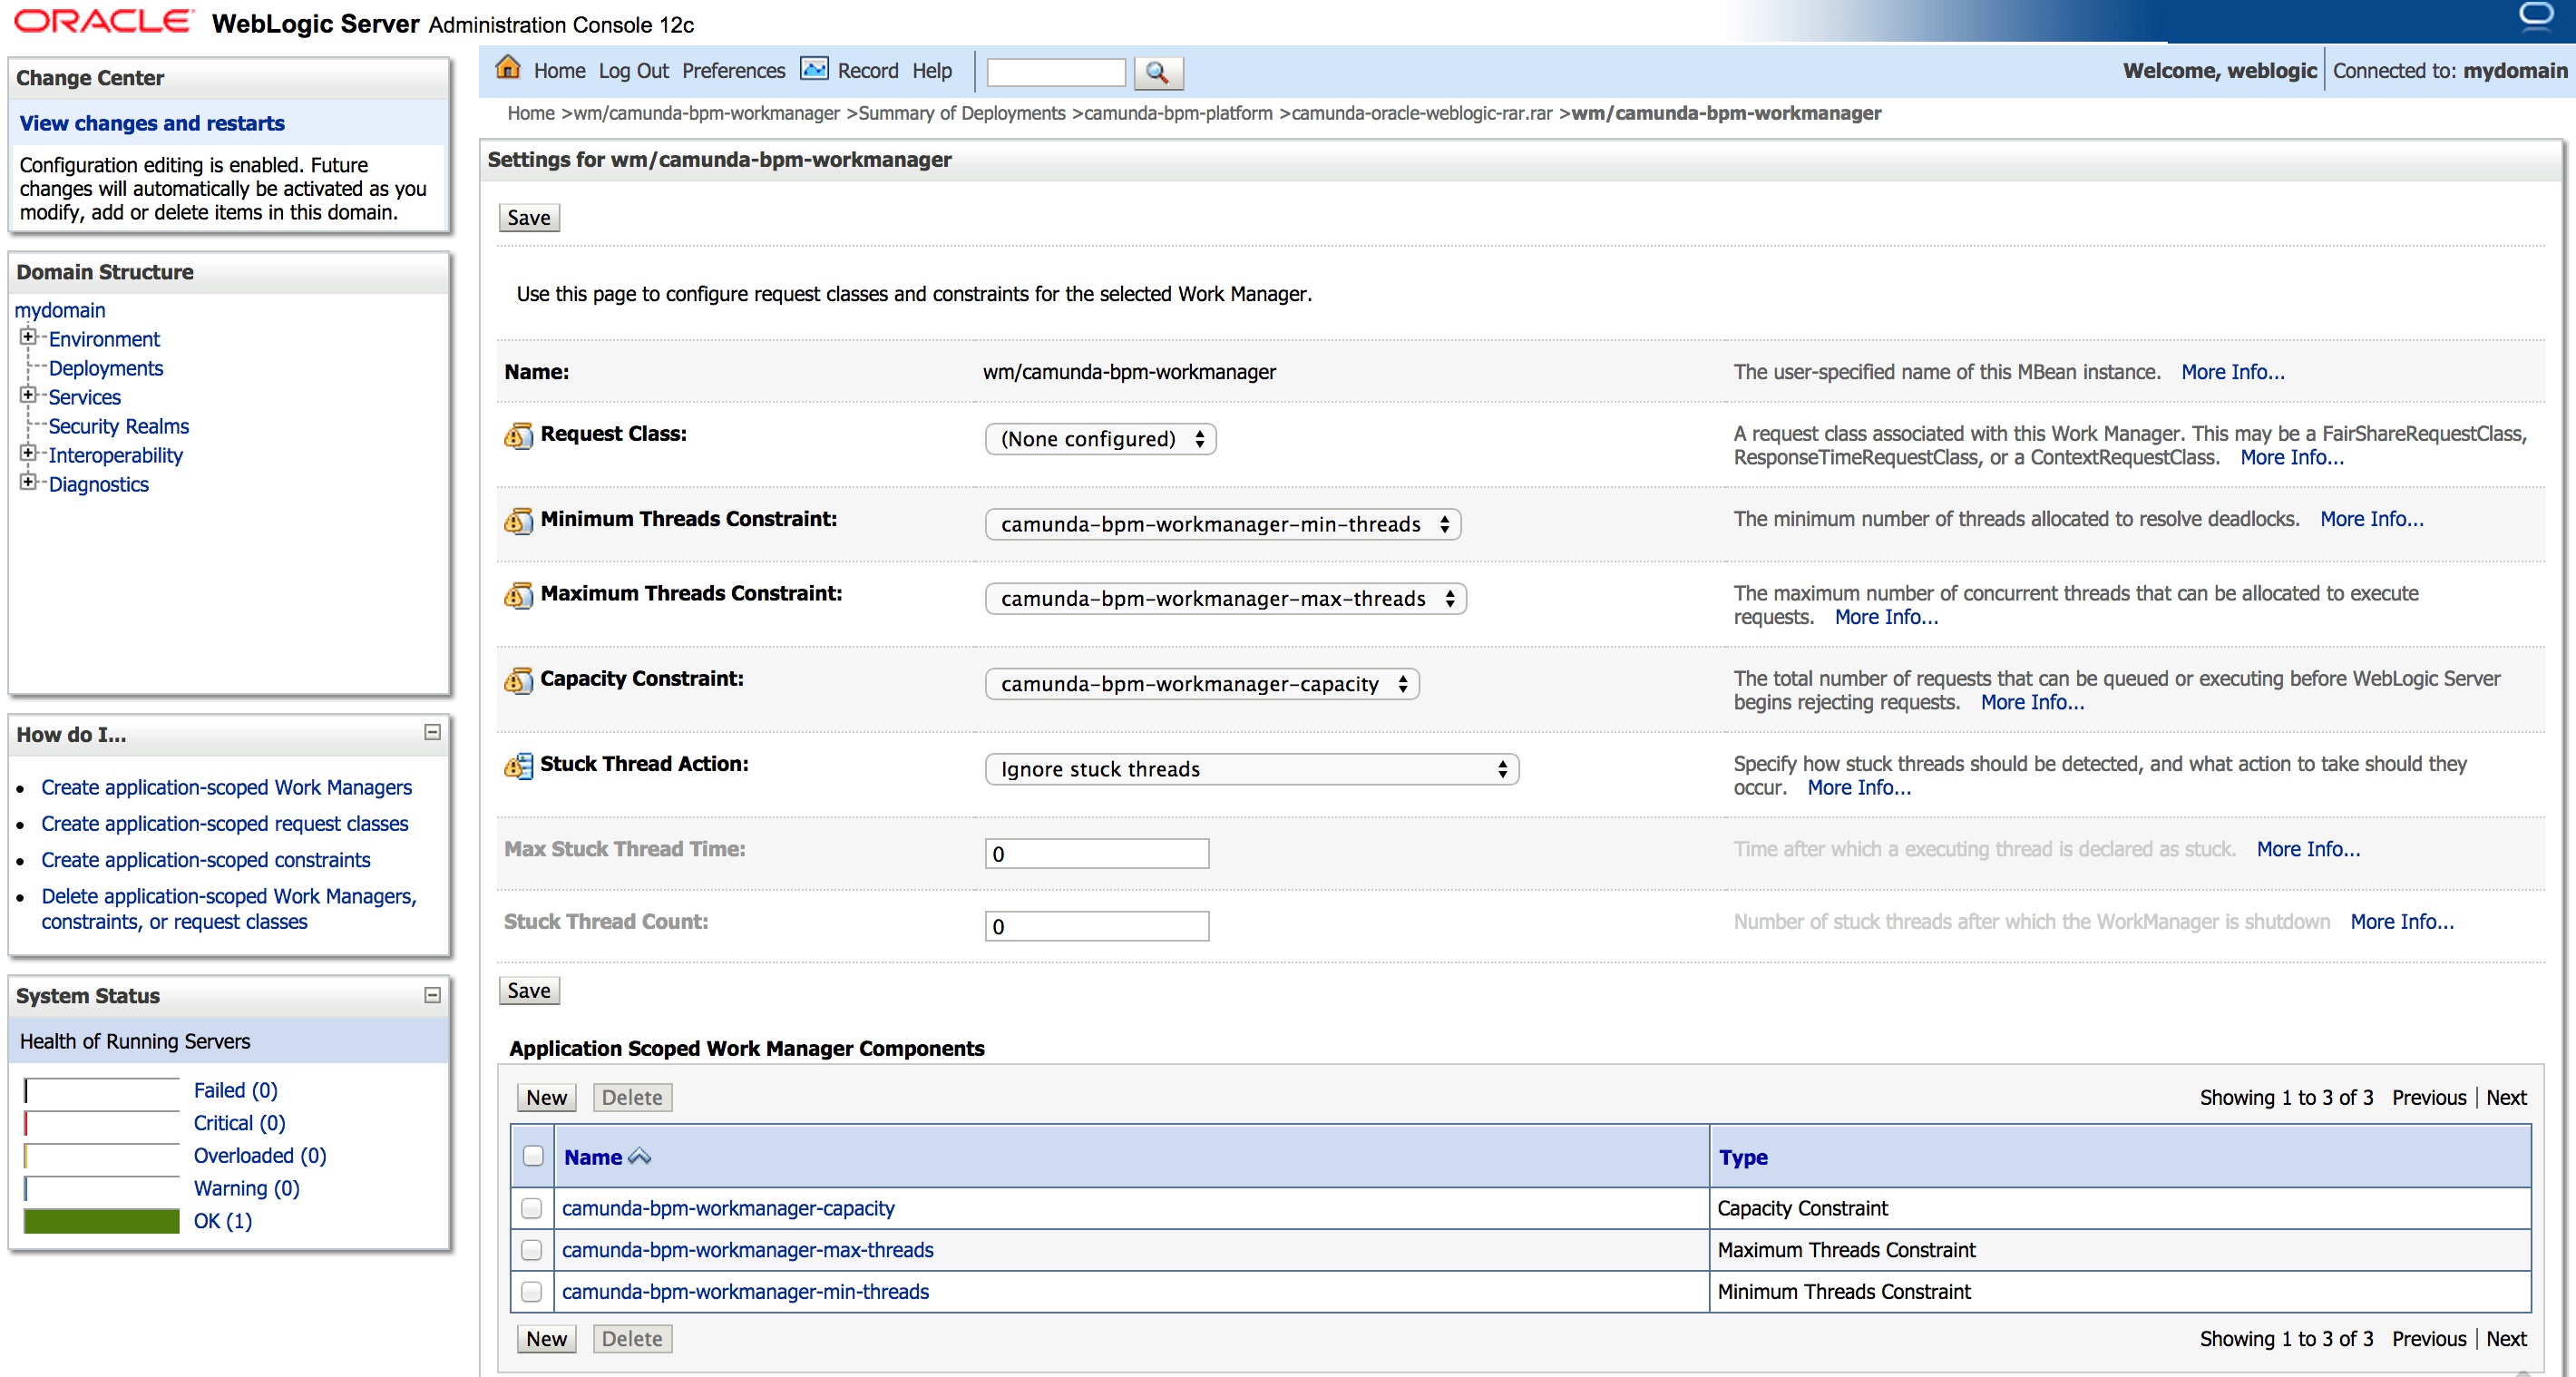 Install the Full Distribution on Oracle WebLogic Application